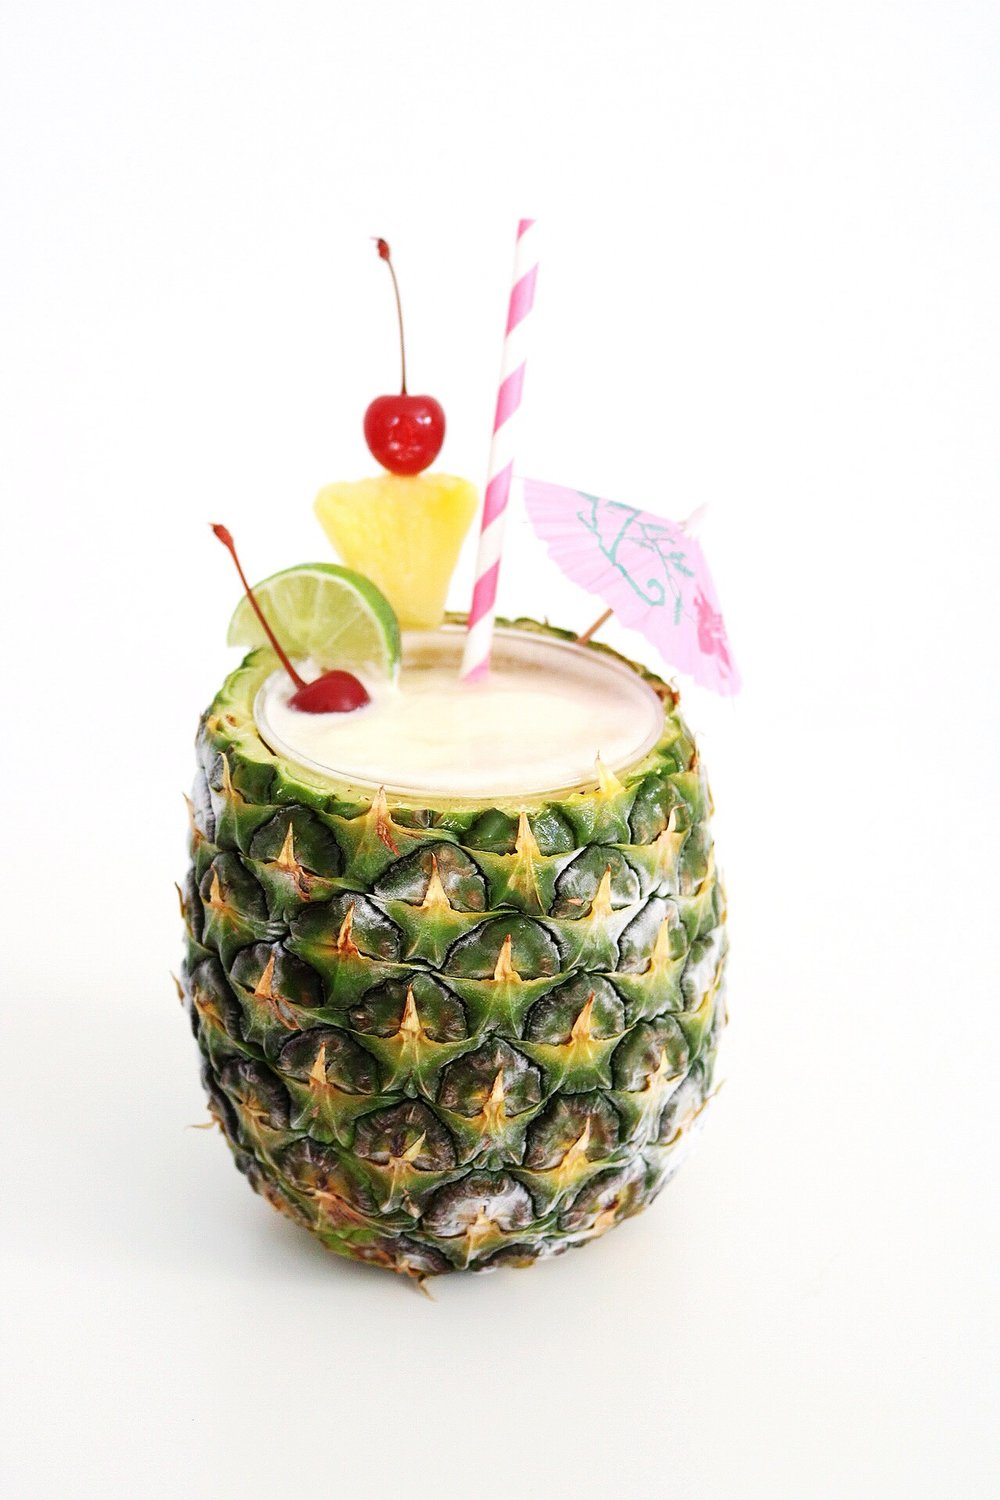 It's all about the garnishes and a dark rum float when it comes to a legit piña colada!